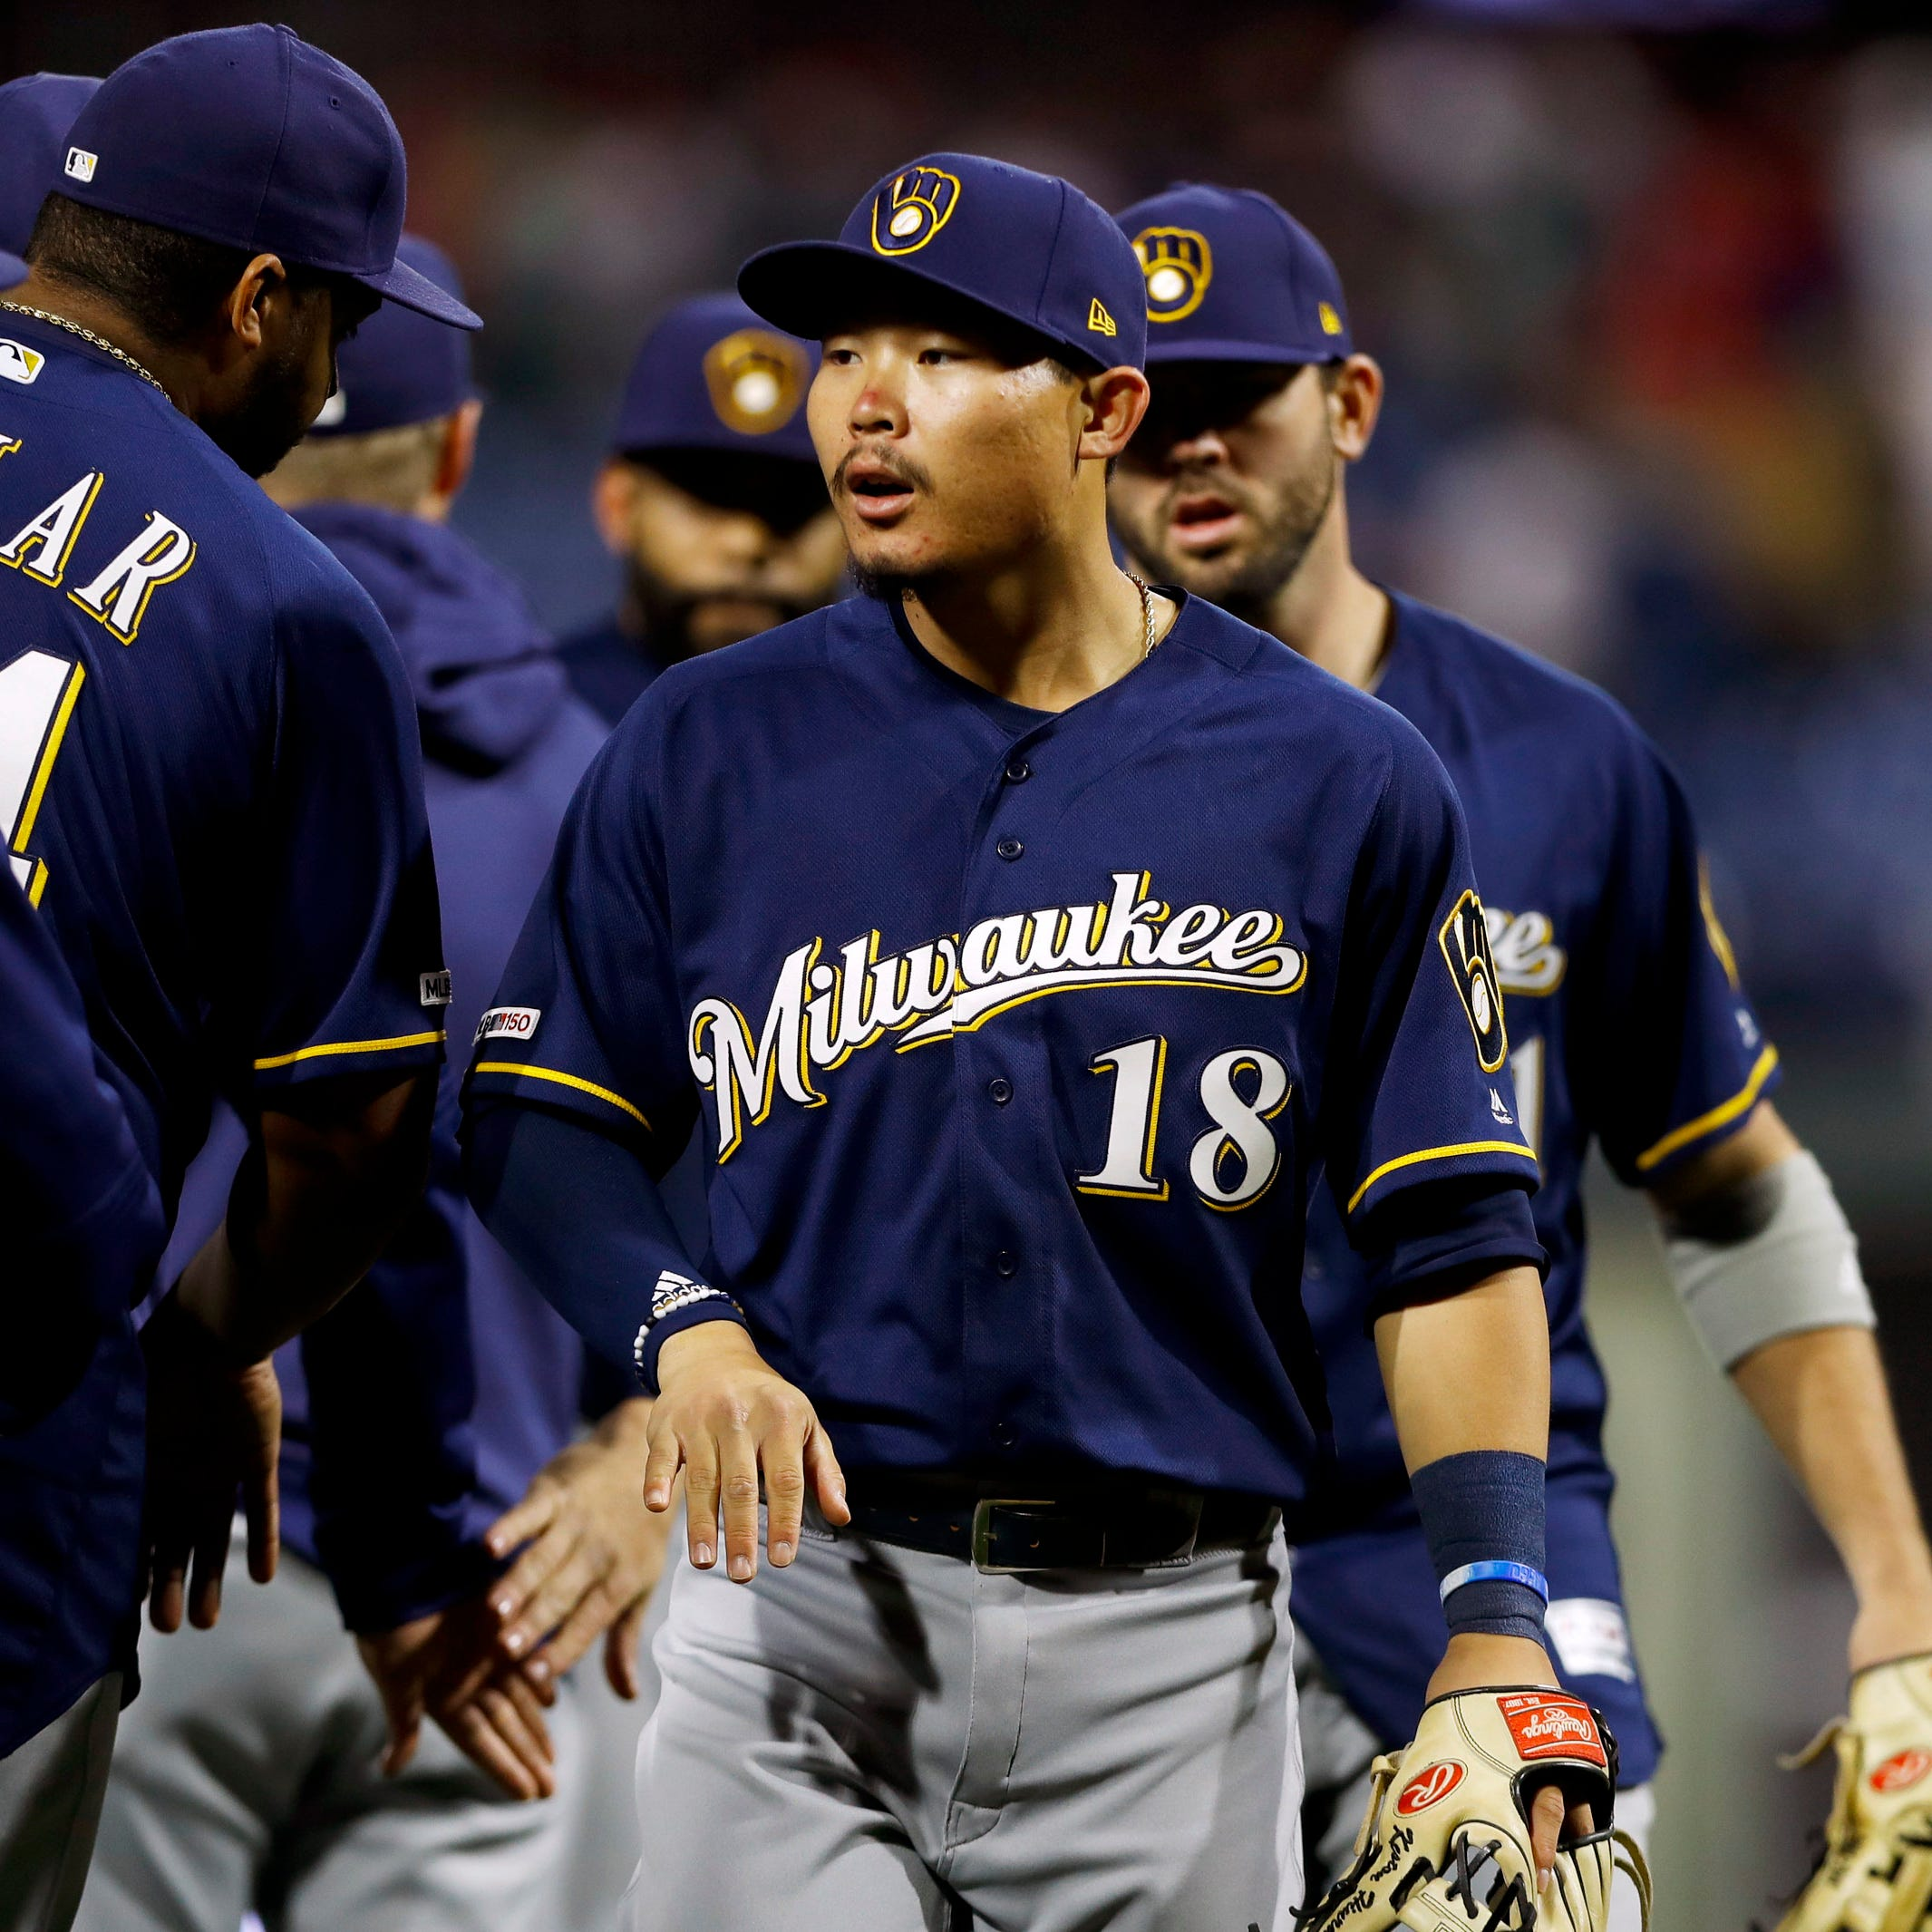 On a whirlwind day he never will forget, all's well that ends well for Brewers' Keston Hiura